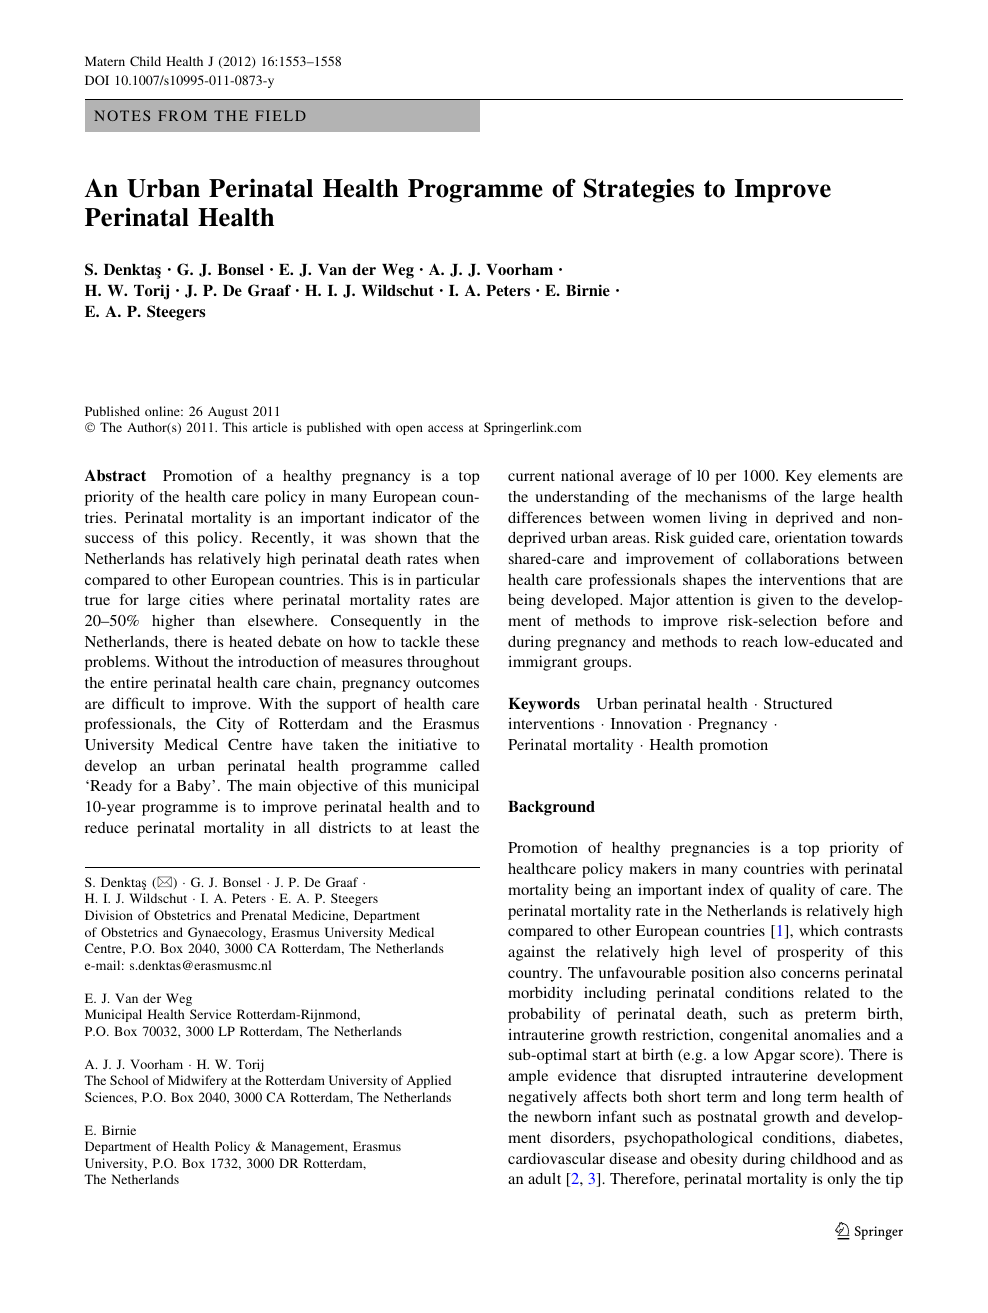 An Urban Perinatal Health Programme of Strategies to Improve